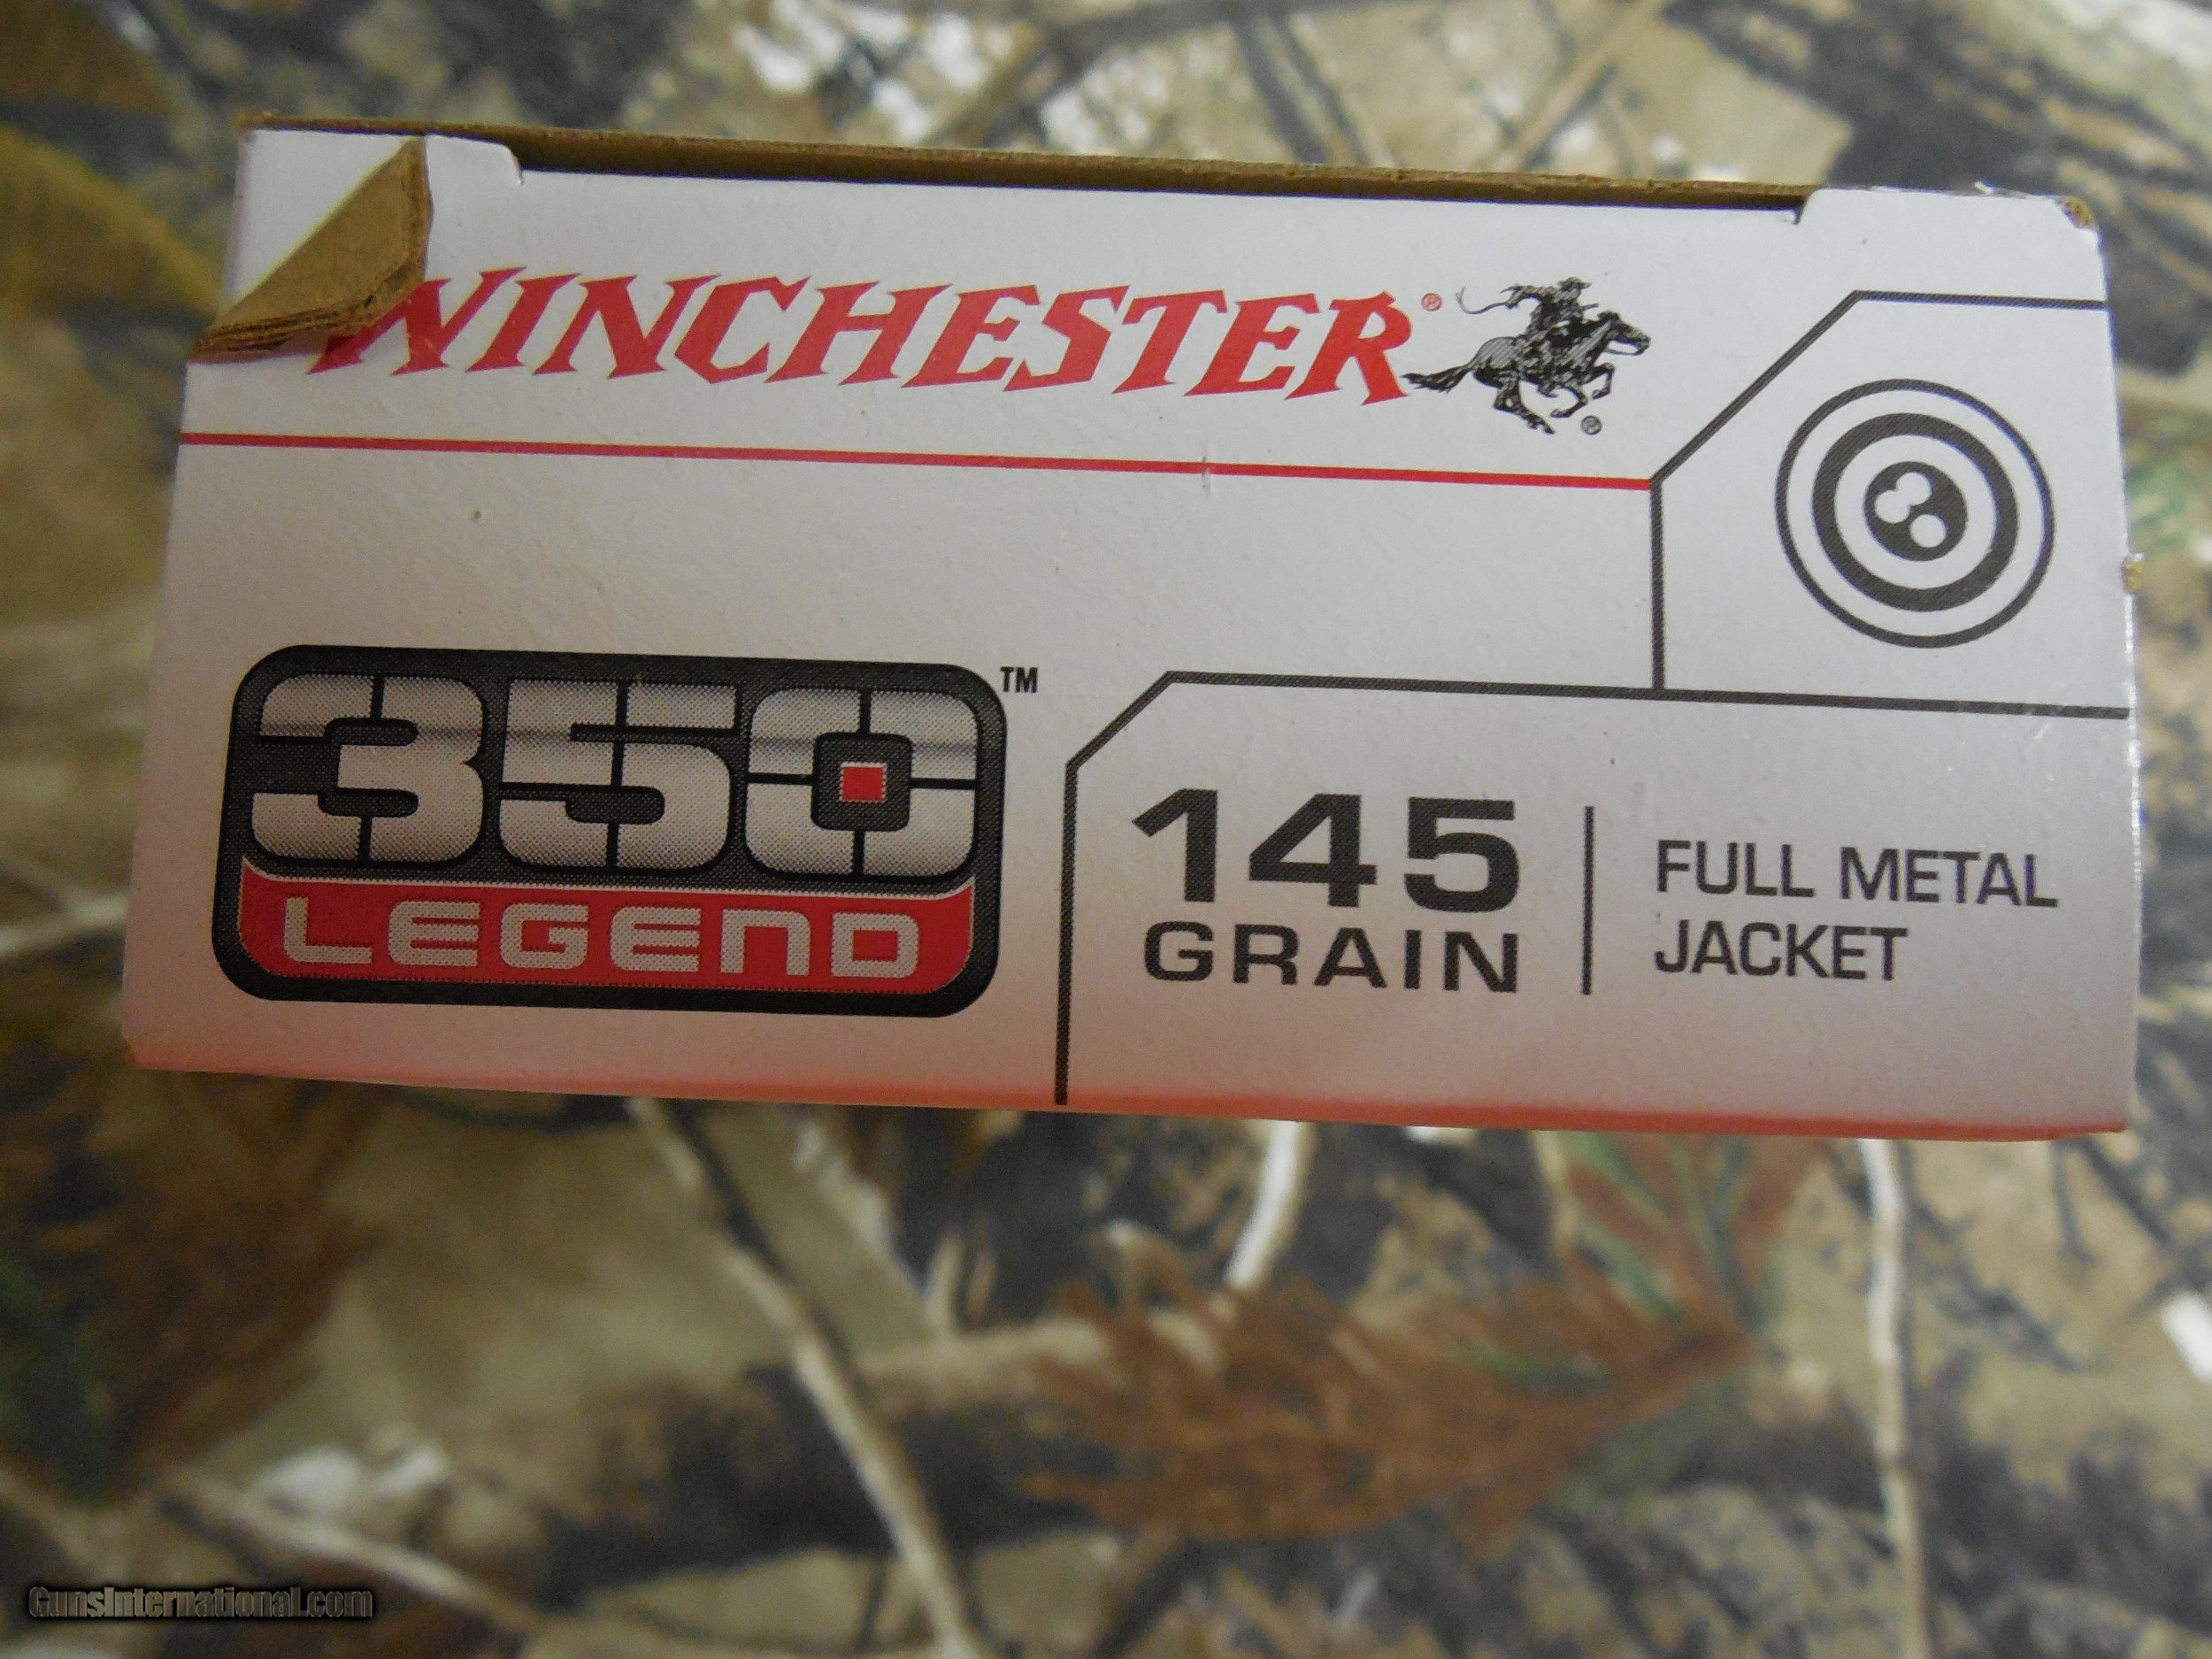 SAVAGE 350 LEGENT, AXIS XP, BOLT ACTION, 18